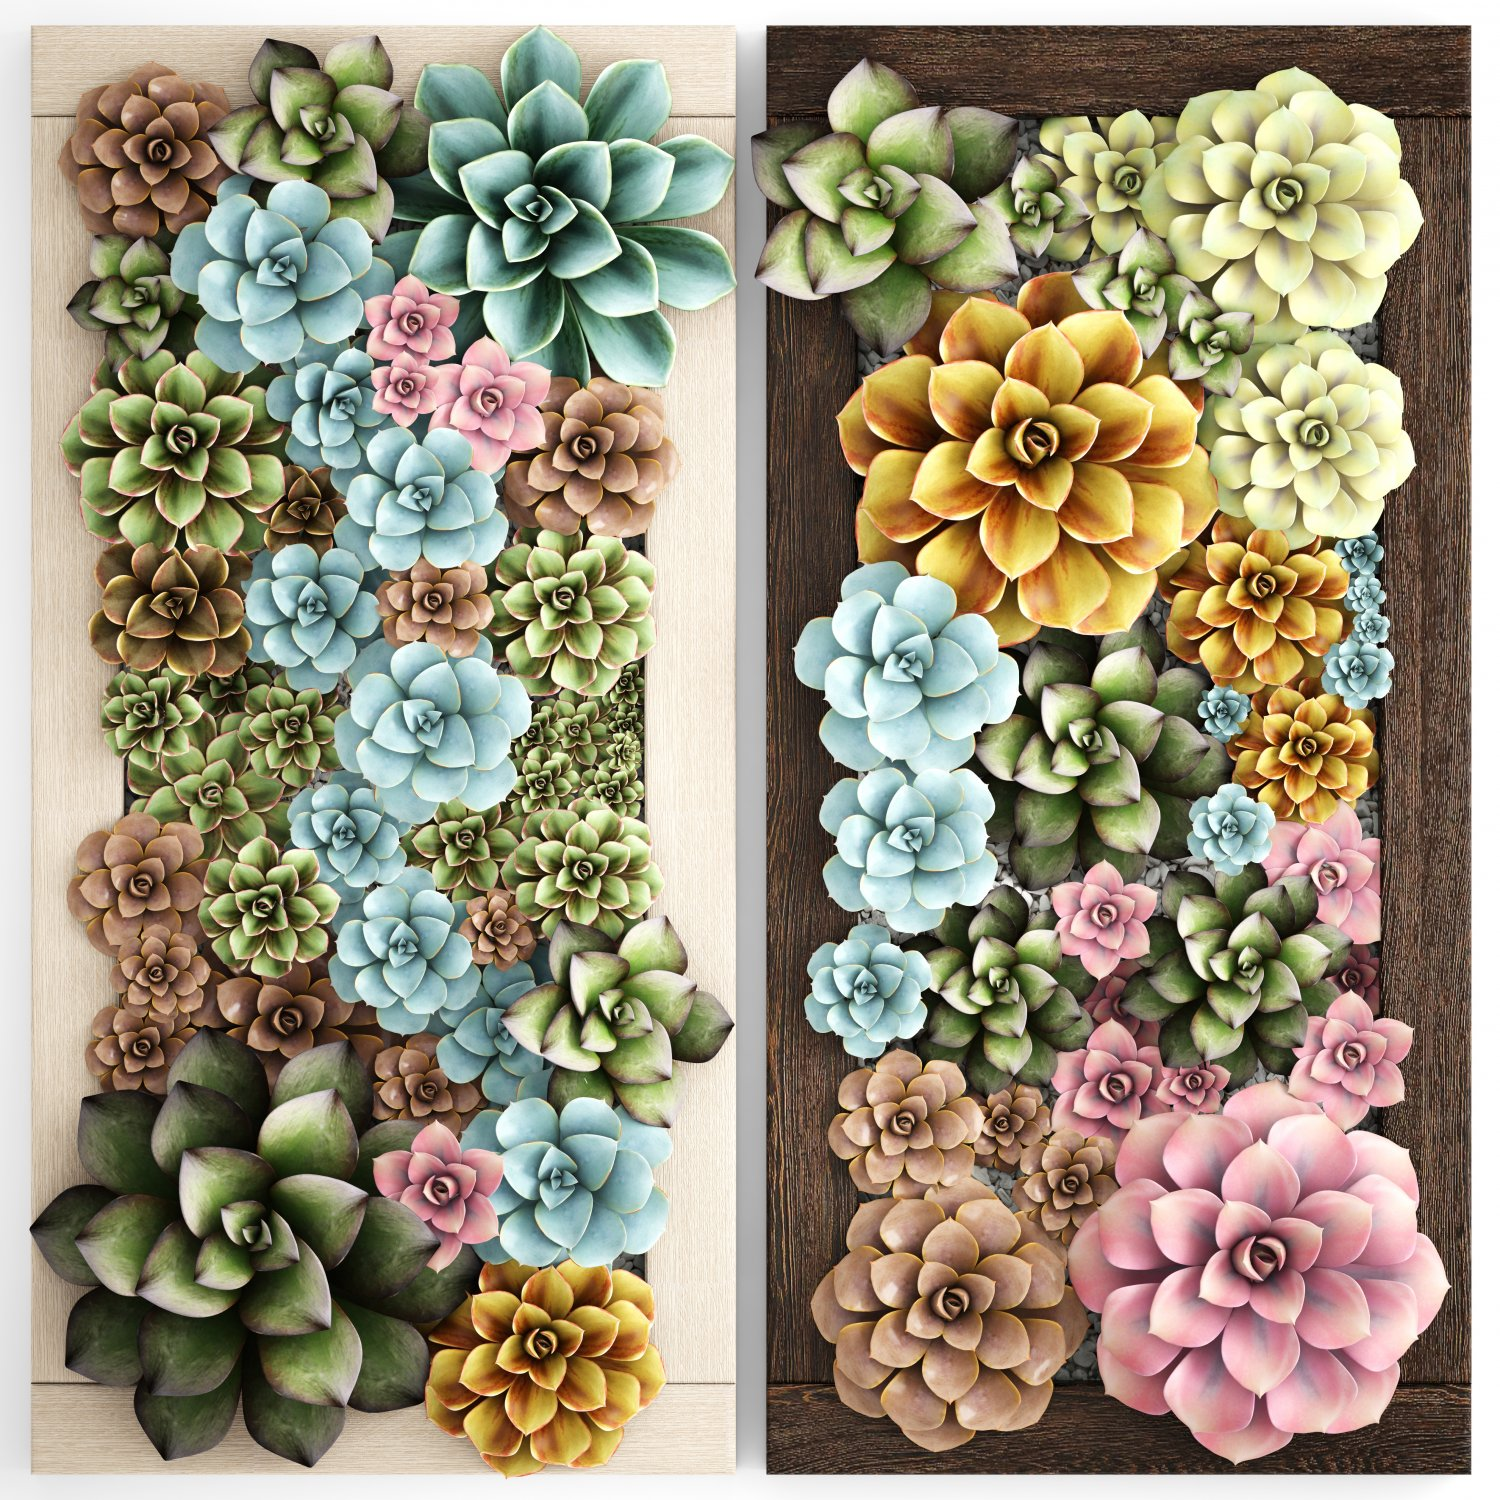 janna do the img entrance dont this don design colourful to at vertical garden up small gardens make t australian or annuals schreier pretty